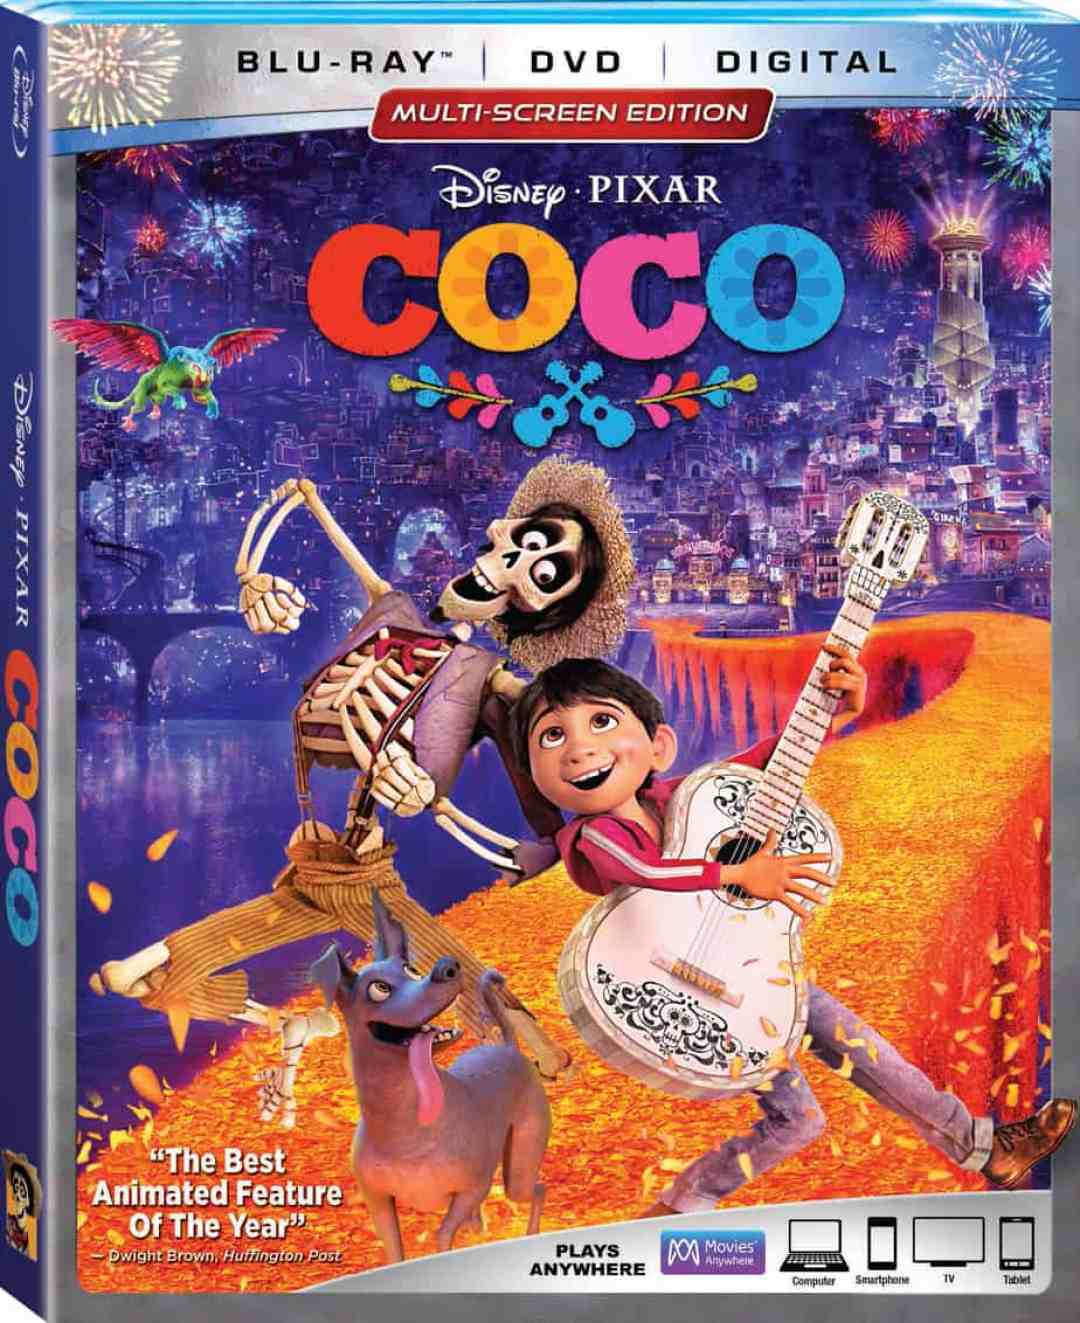 As part of the #BlackPantherEvent Disney will be releasing Coco on BluRay #CocoBluRay